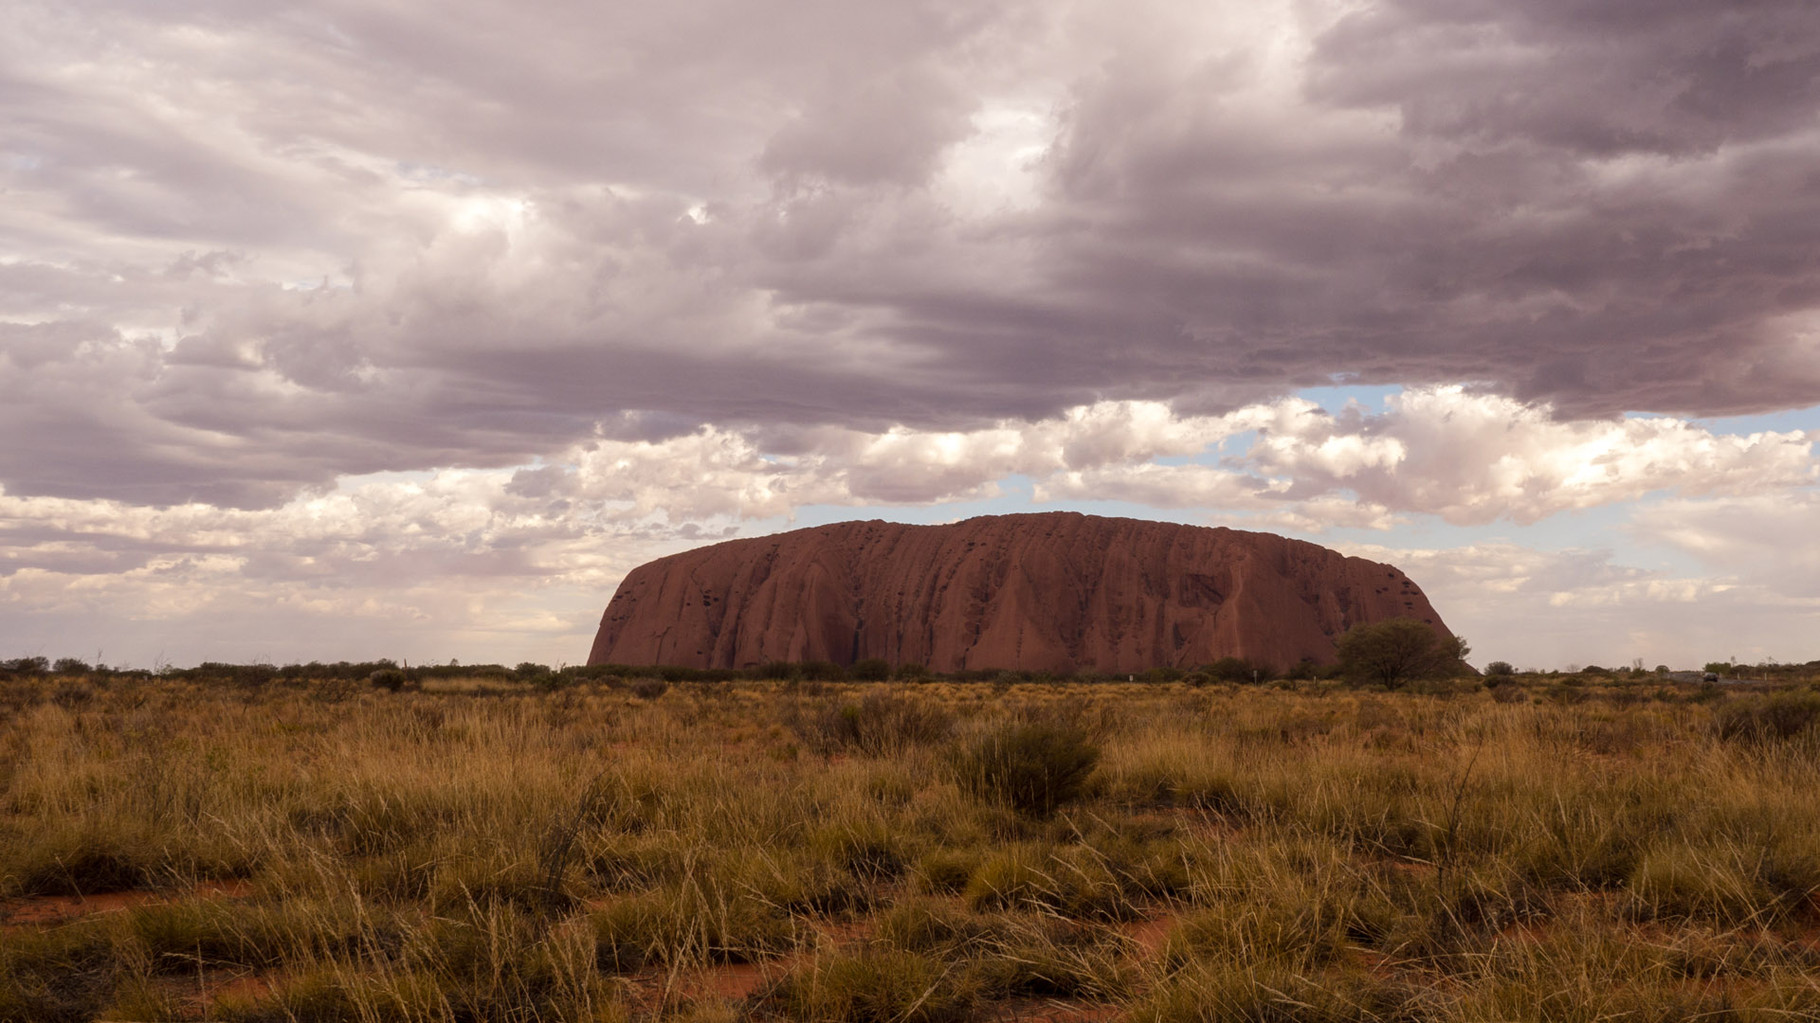 Uluru (Ayers Rock) at a cloudy late afternoon